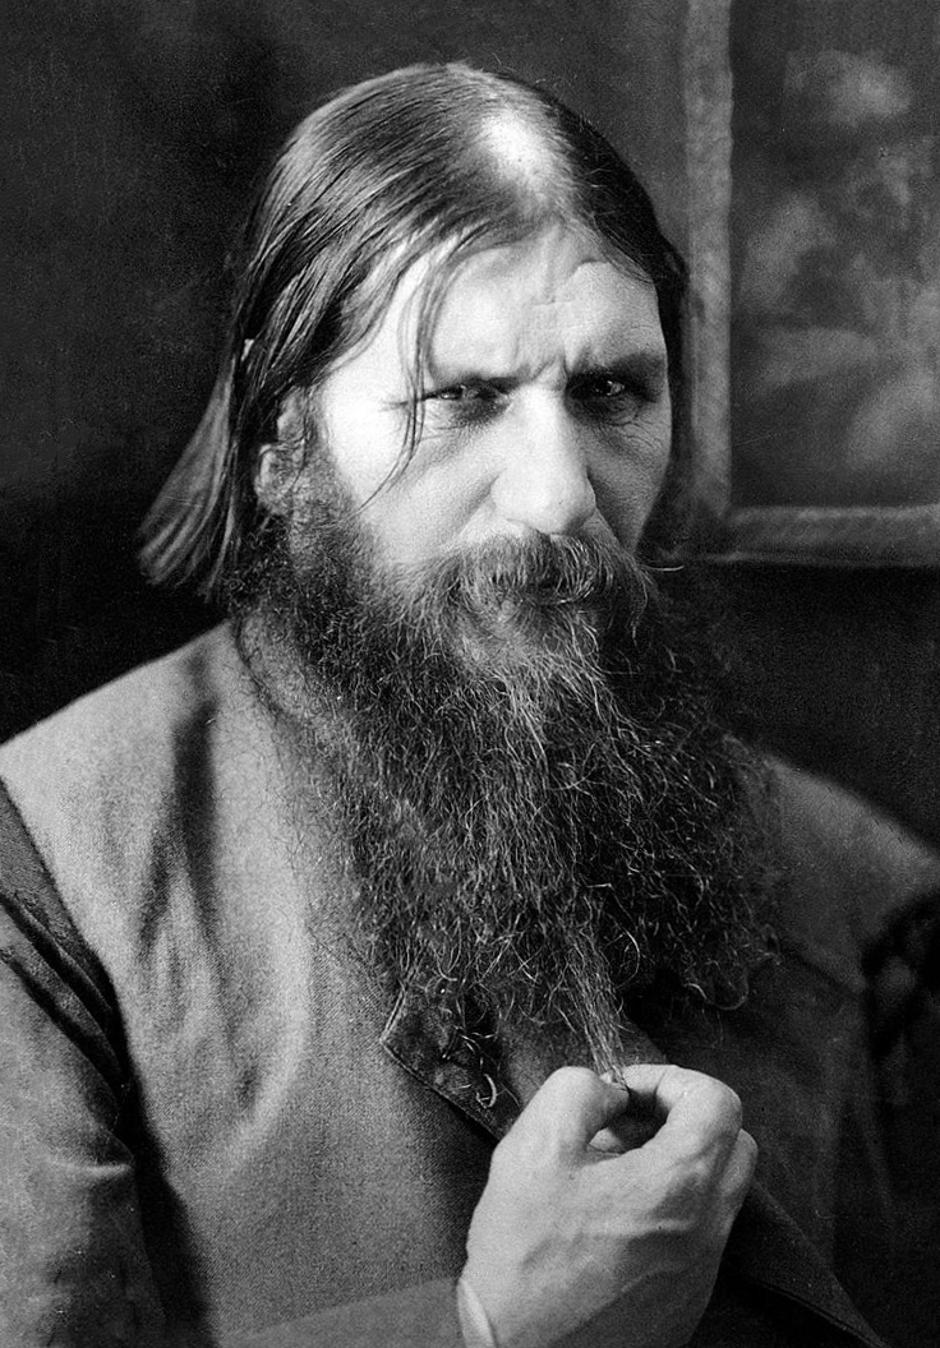 Grigori Rasputin | Author: Public Domain